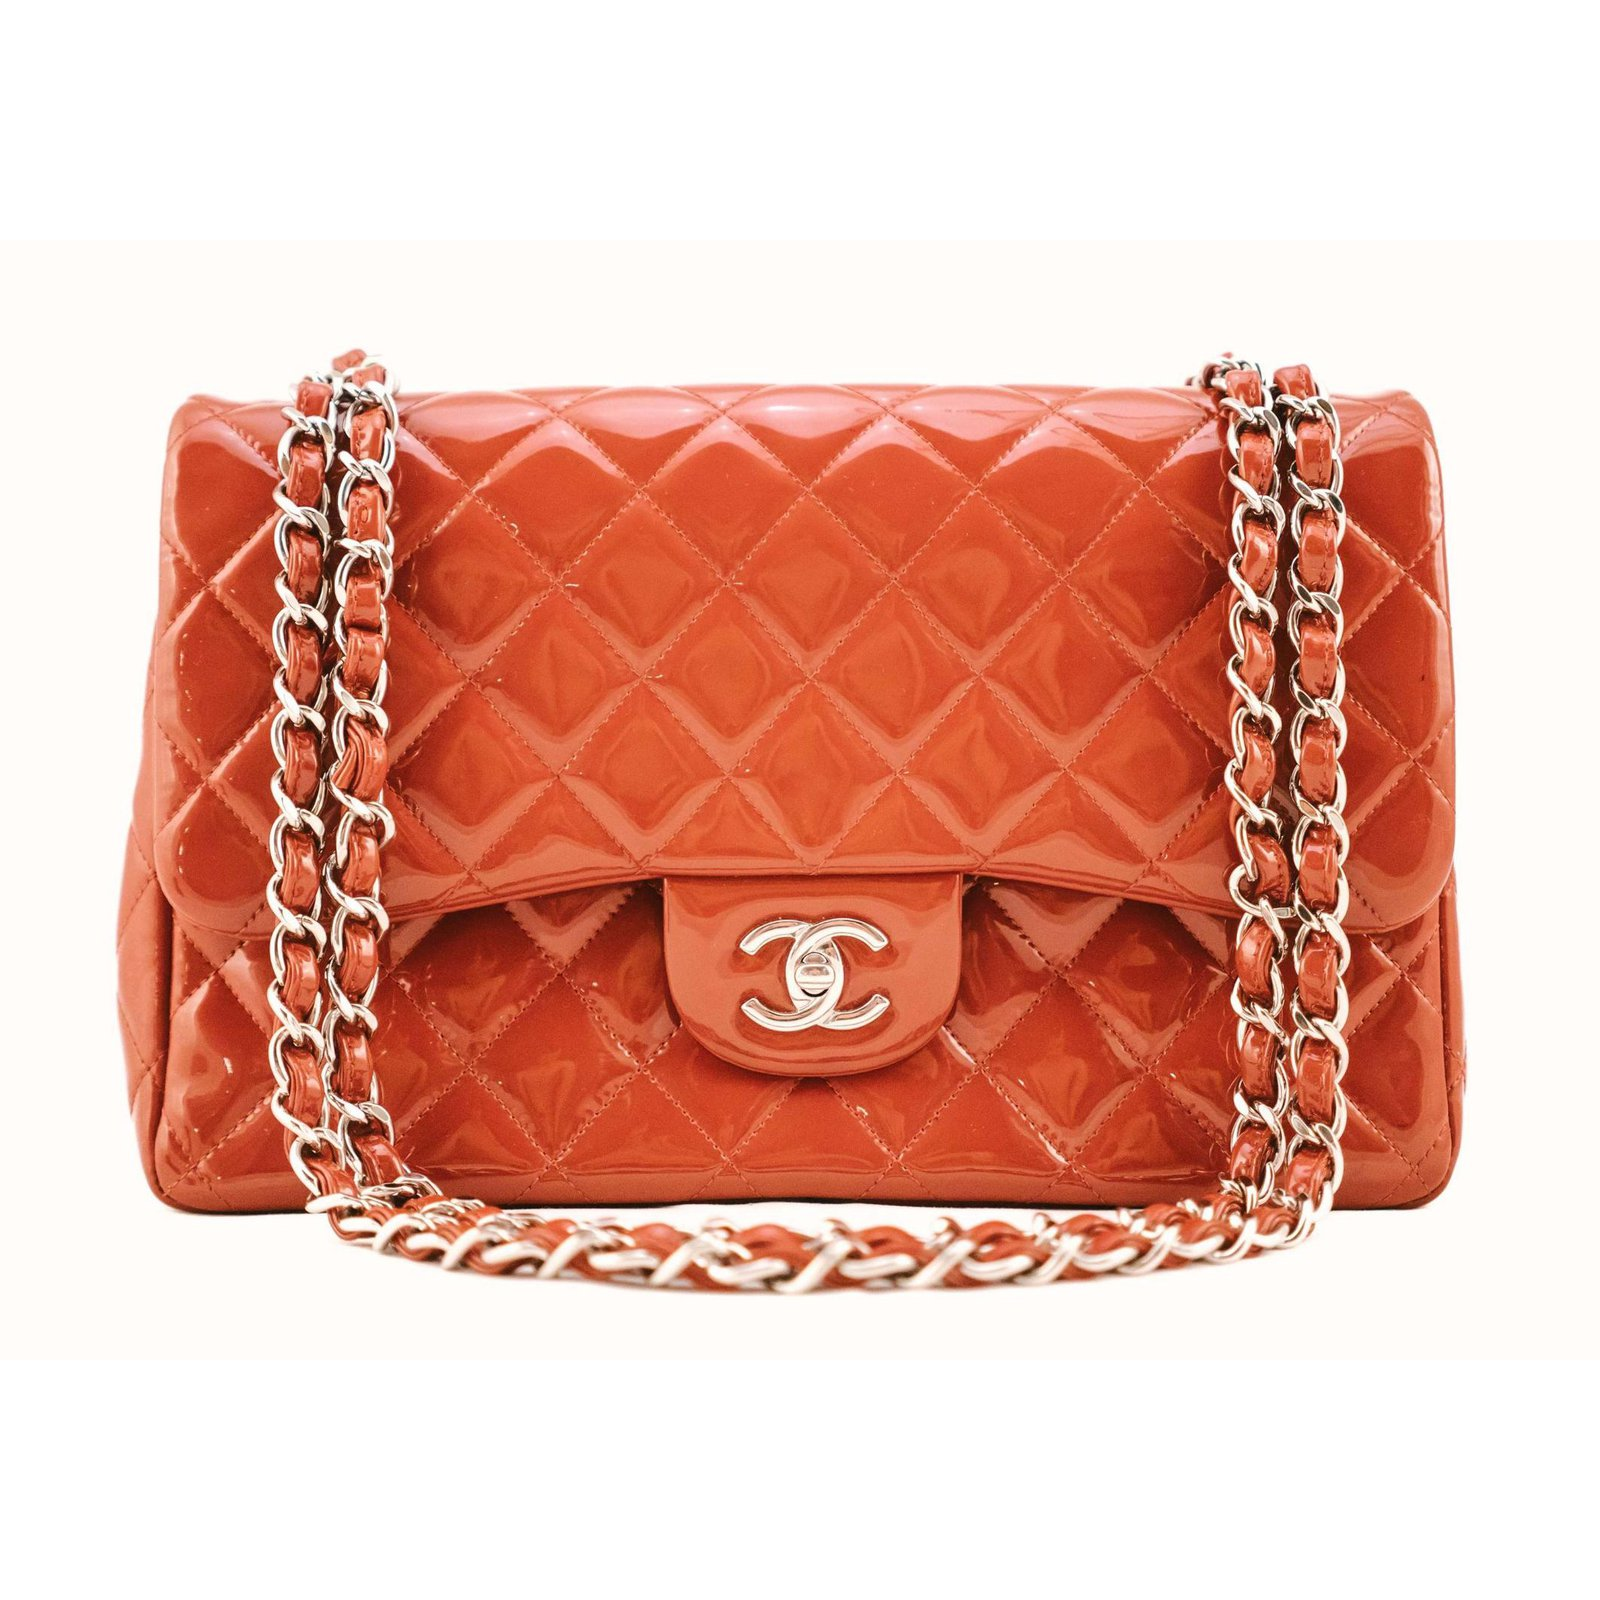 a6081768c7cc Chanel timeless classic jumbo lined flap Handbags Patent leather Red  ref.78311